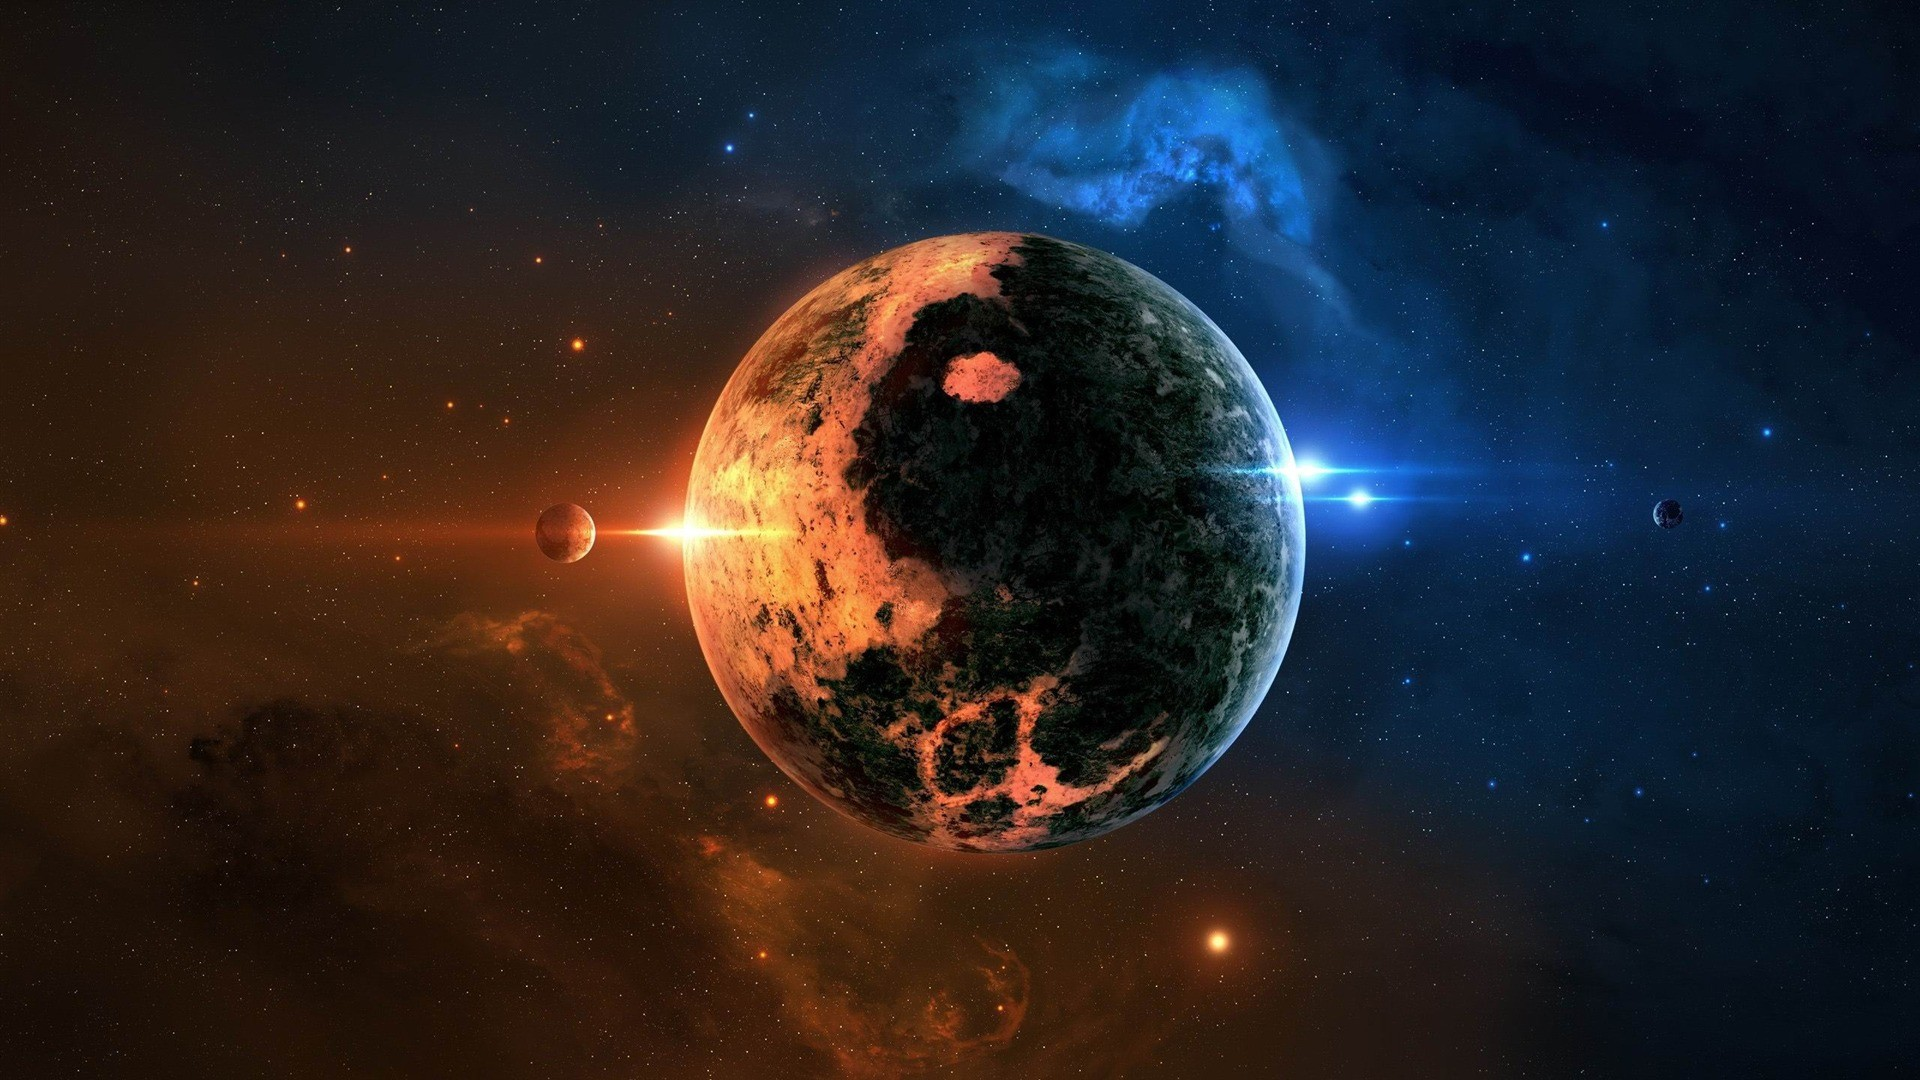 Space Background Images